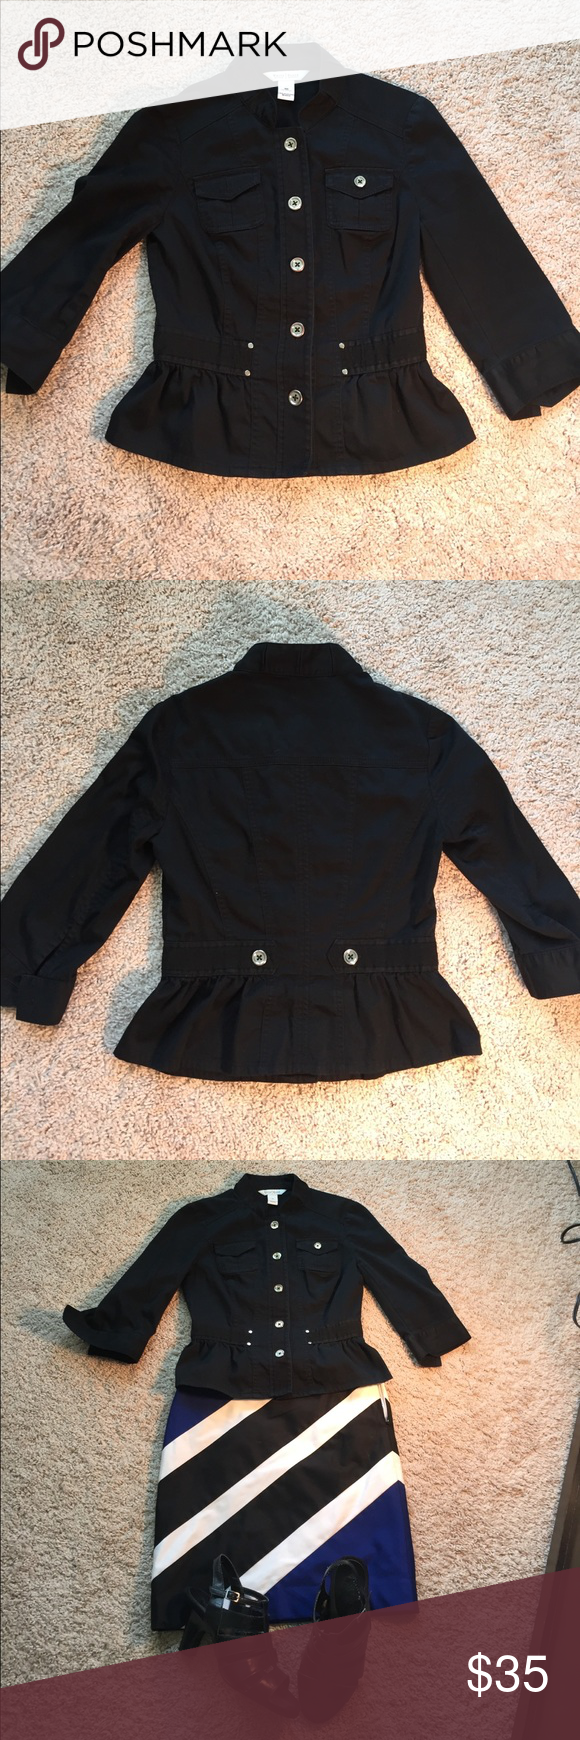 WHBM black Blazer military style 3/4 sleeve Super cute WHBM black blazer, simply would not grow with me, sad to see it go. Big silver buttons in front and back, throw it on over anything and go. Fits small, so perfect for your teenager or a small person. White House Black Market Jackets & Coats Blazers